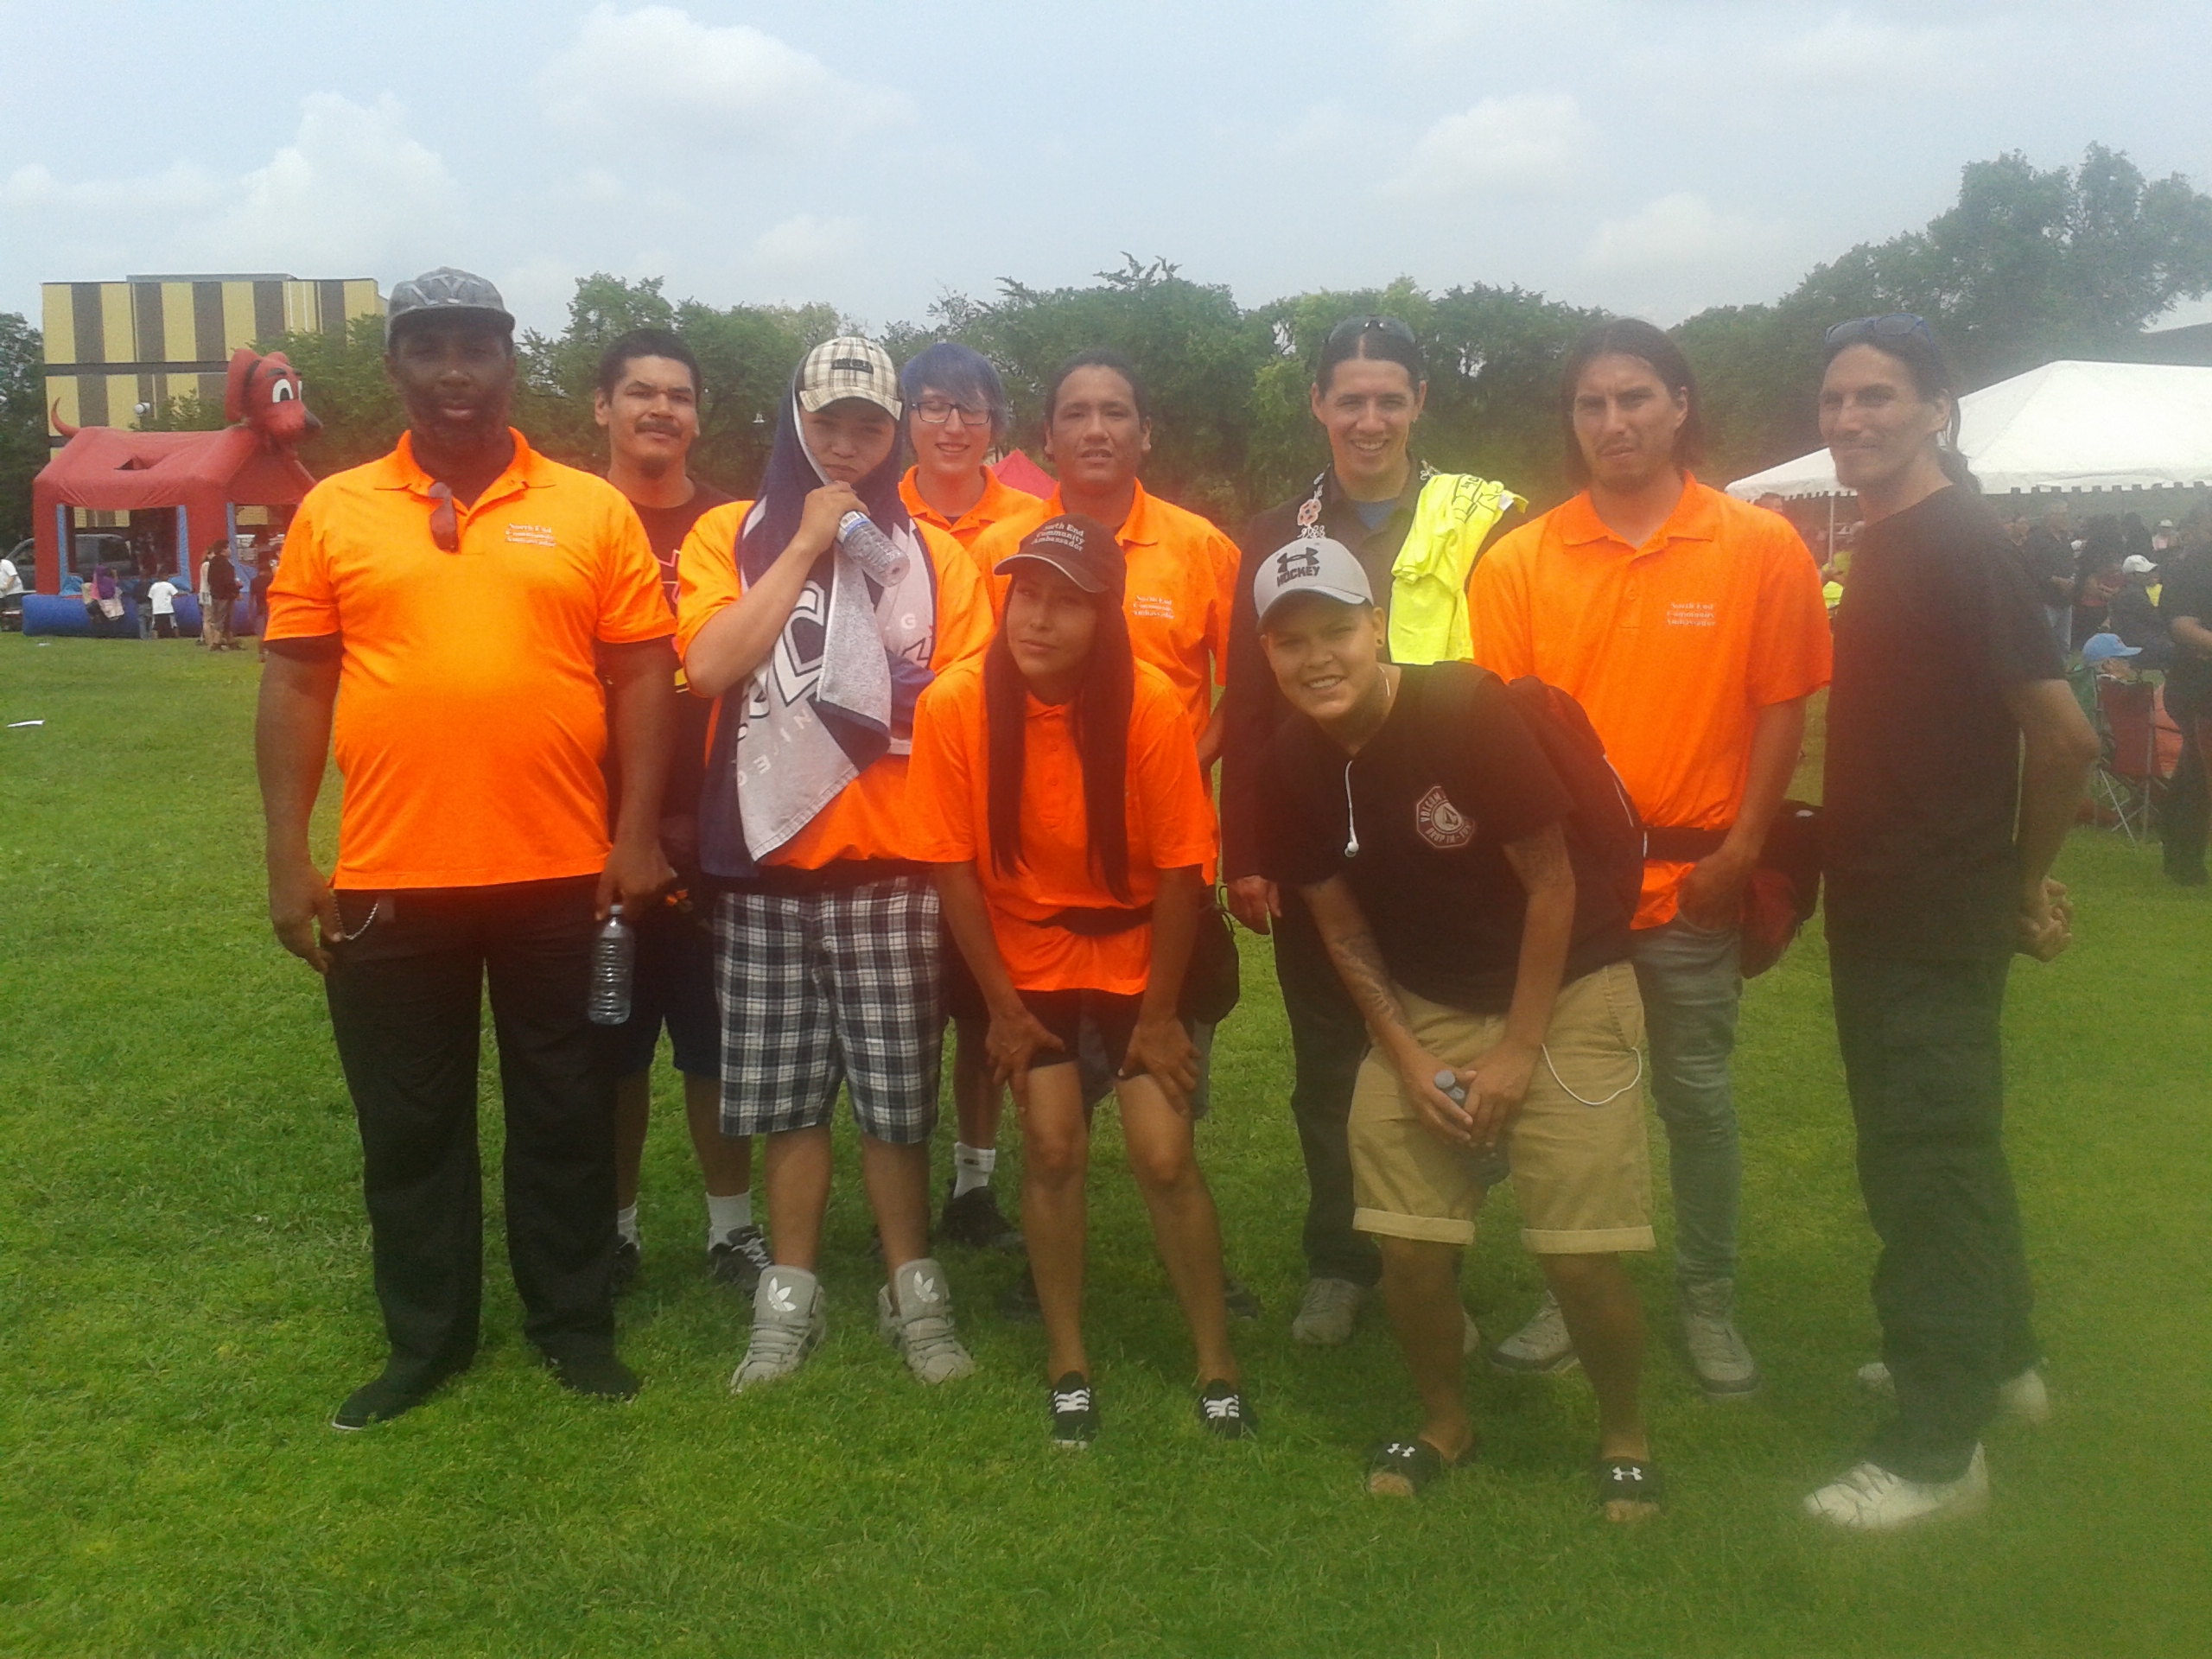 Ambassadors attended the recent NECRC picnic.